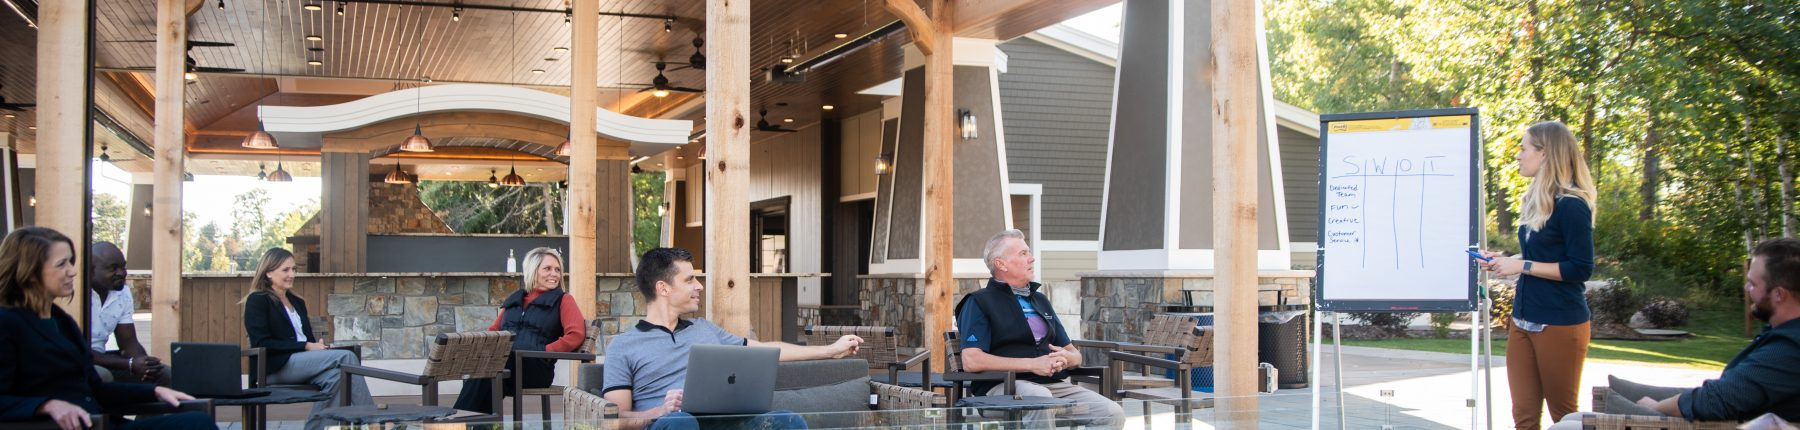 Meeting held at the outdoor patio area